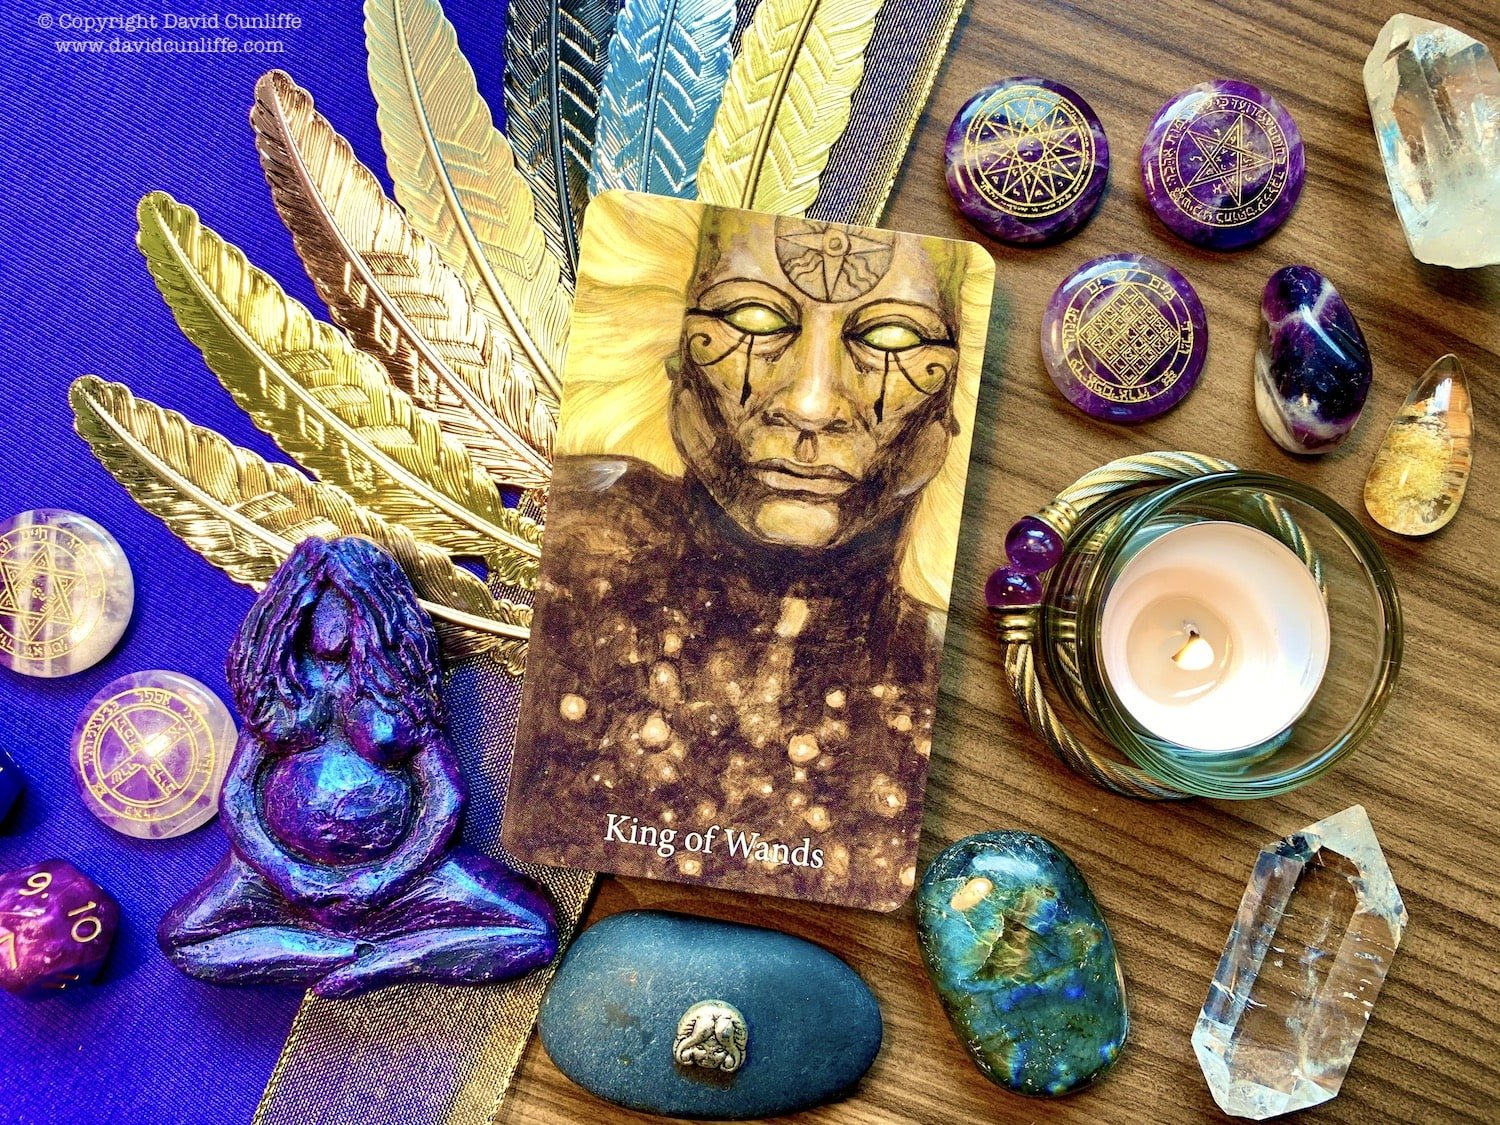 Tarot: King of Wands from the Mary-El Tarot, the second edition by Marie White (author)